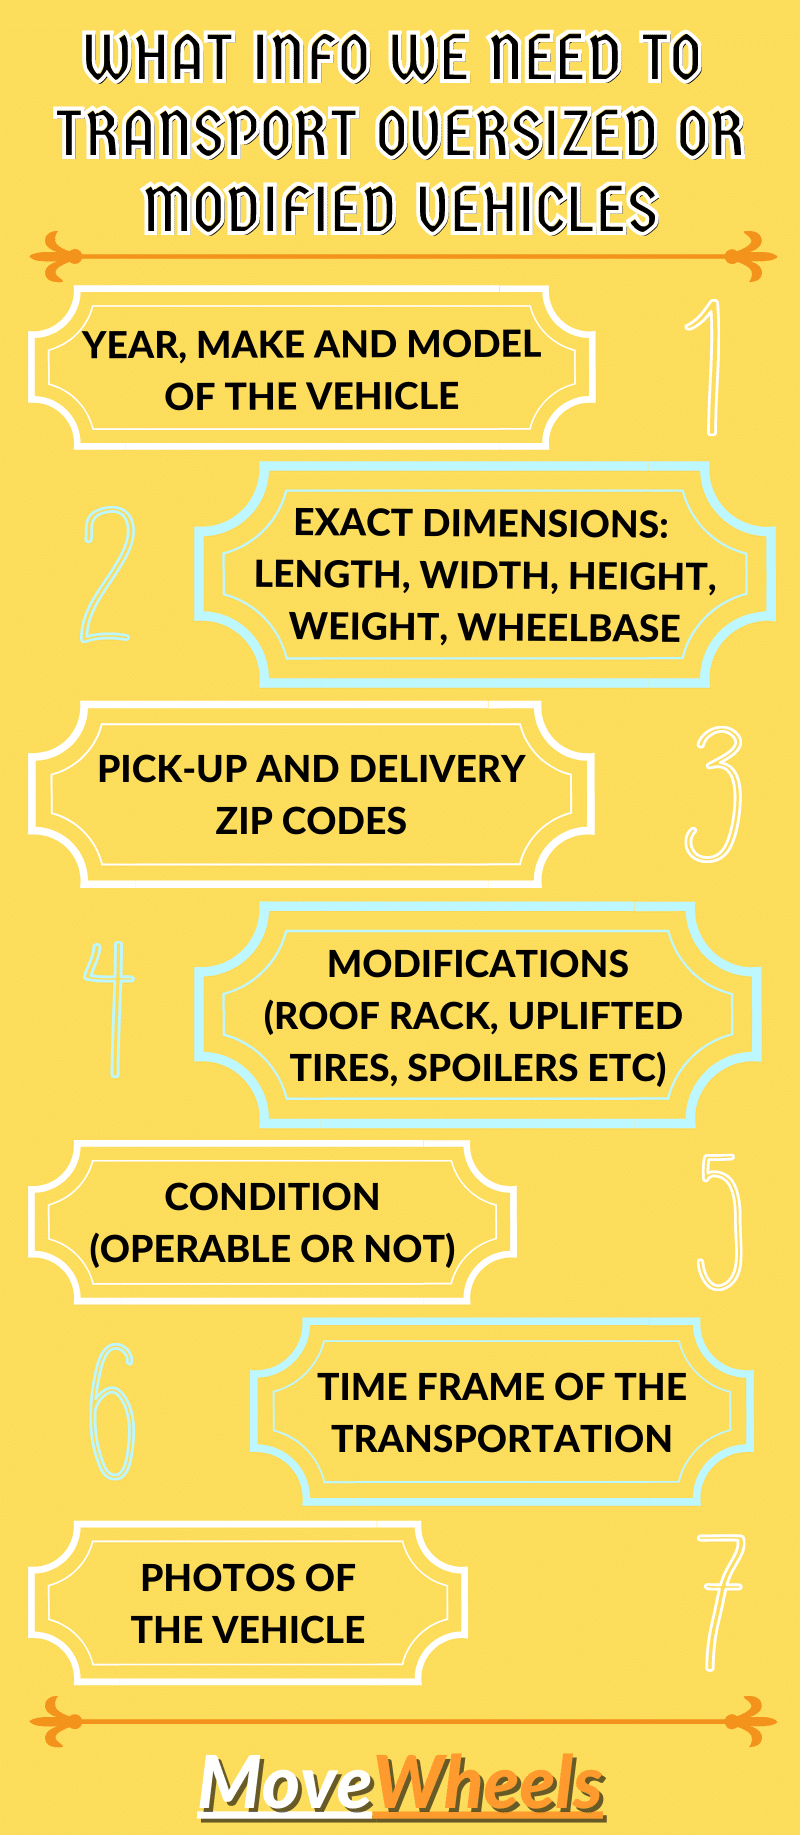 info that is reqiered for modified and oversized vehicles shipping